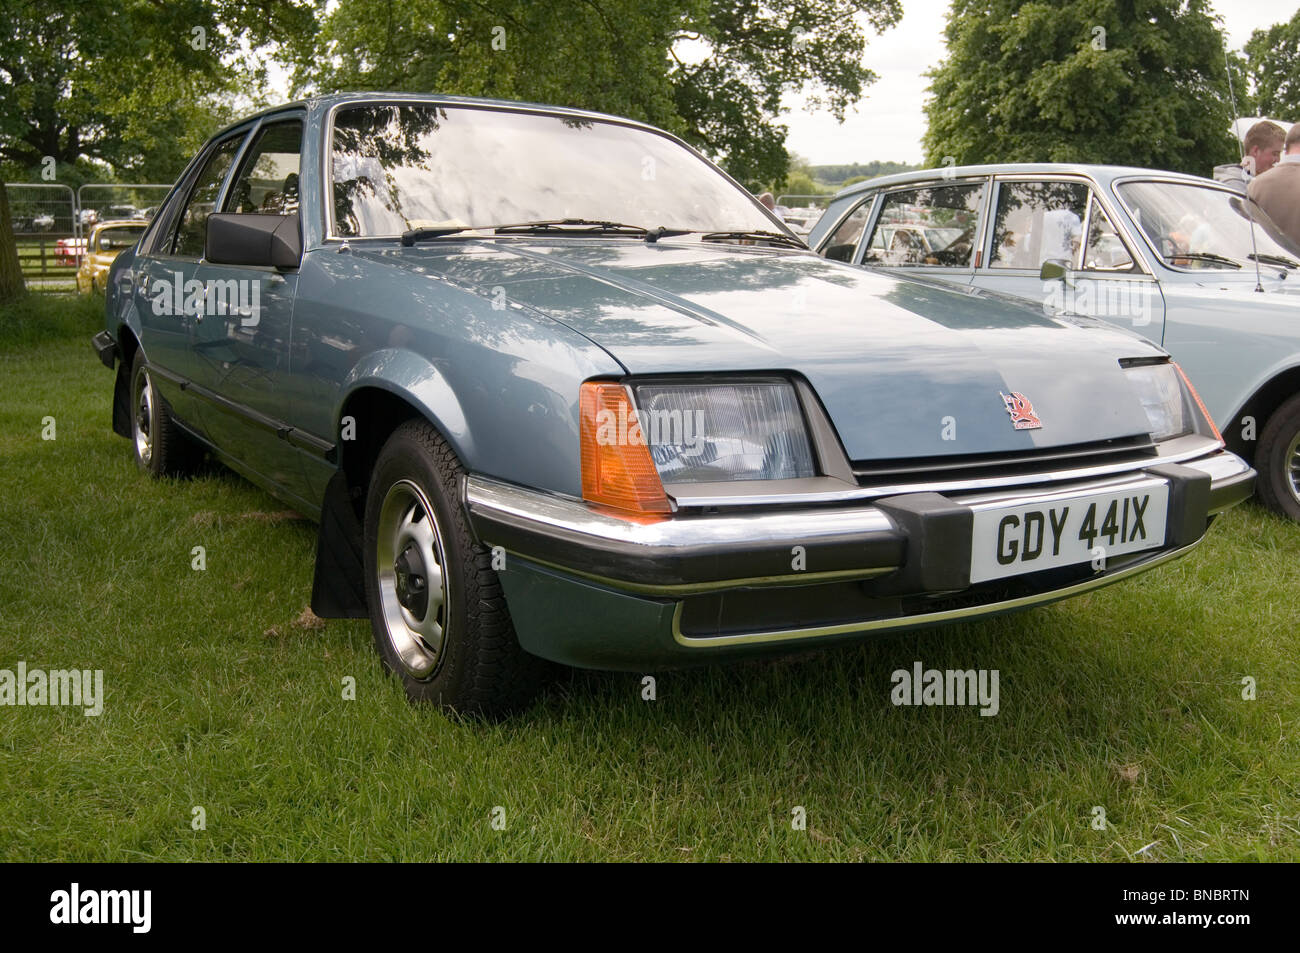 vauxhall carlton 1980's 80's repmobile general motors classic car cars show shows showing competition old - Stock Image